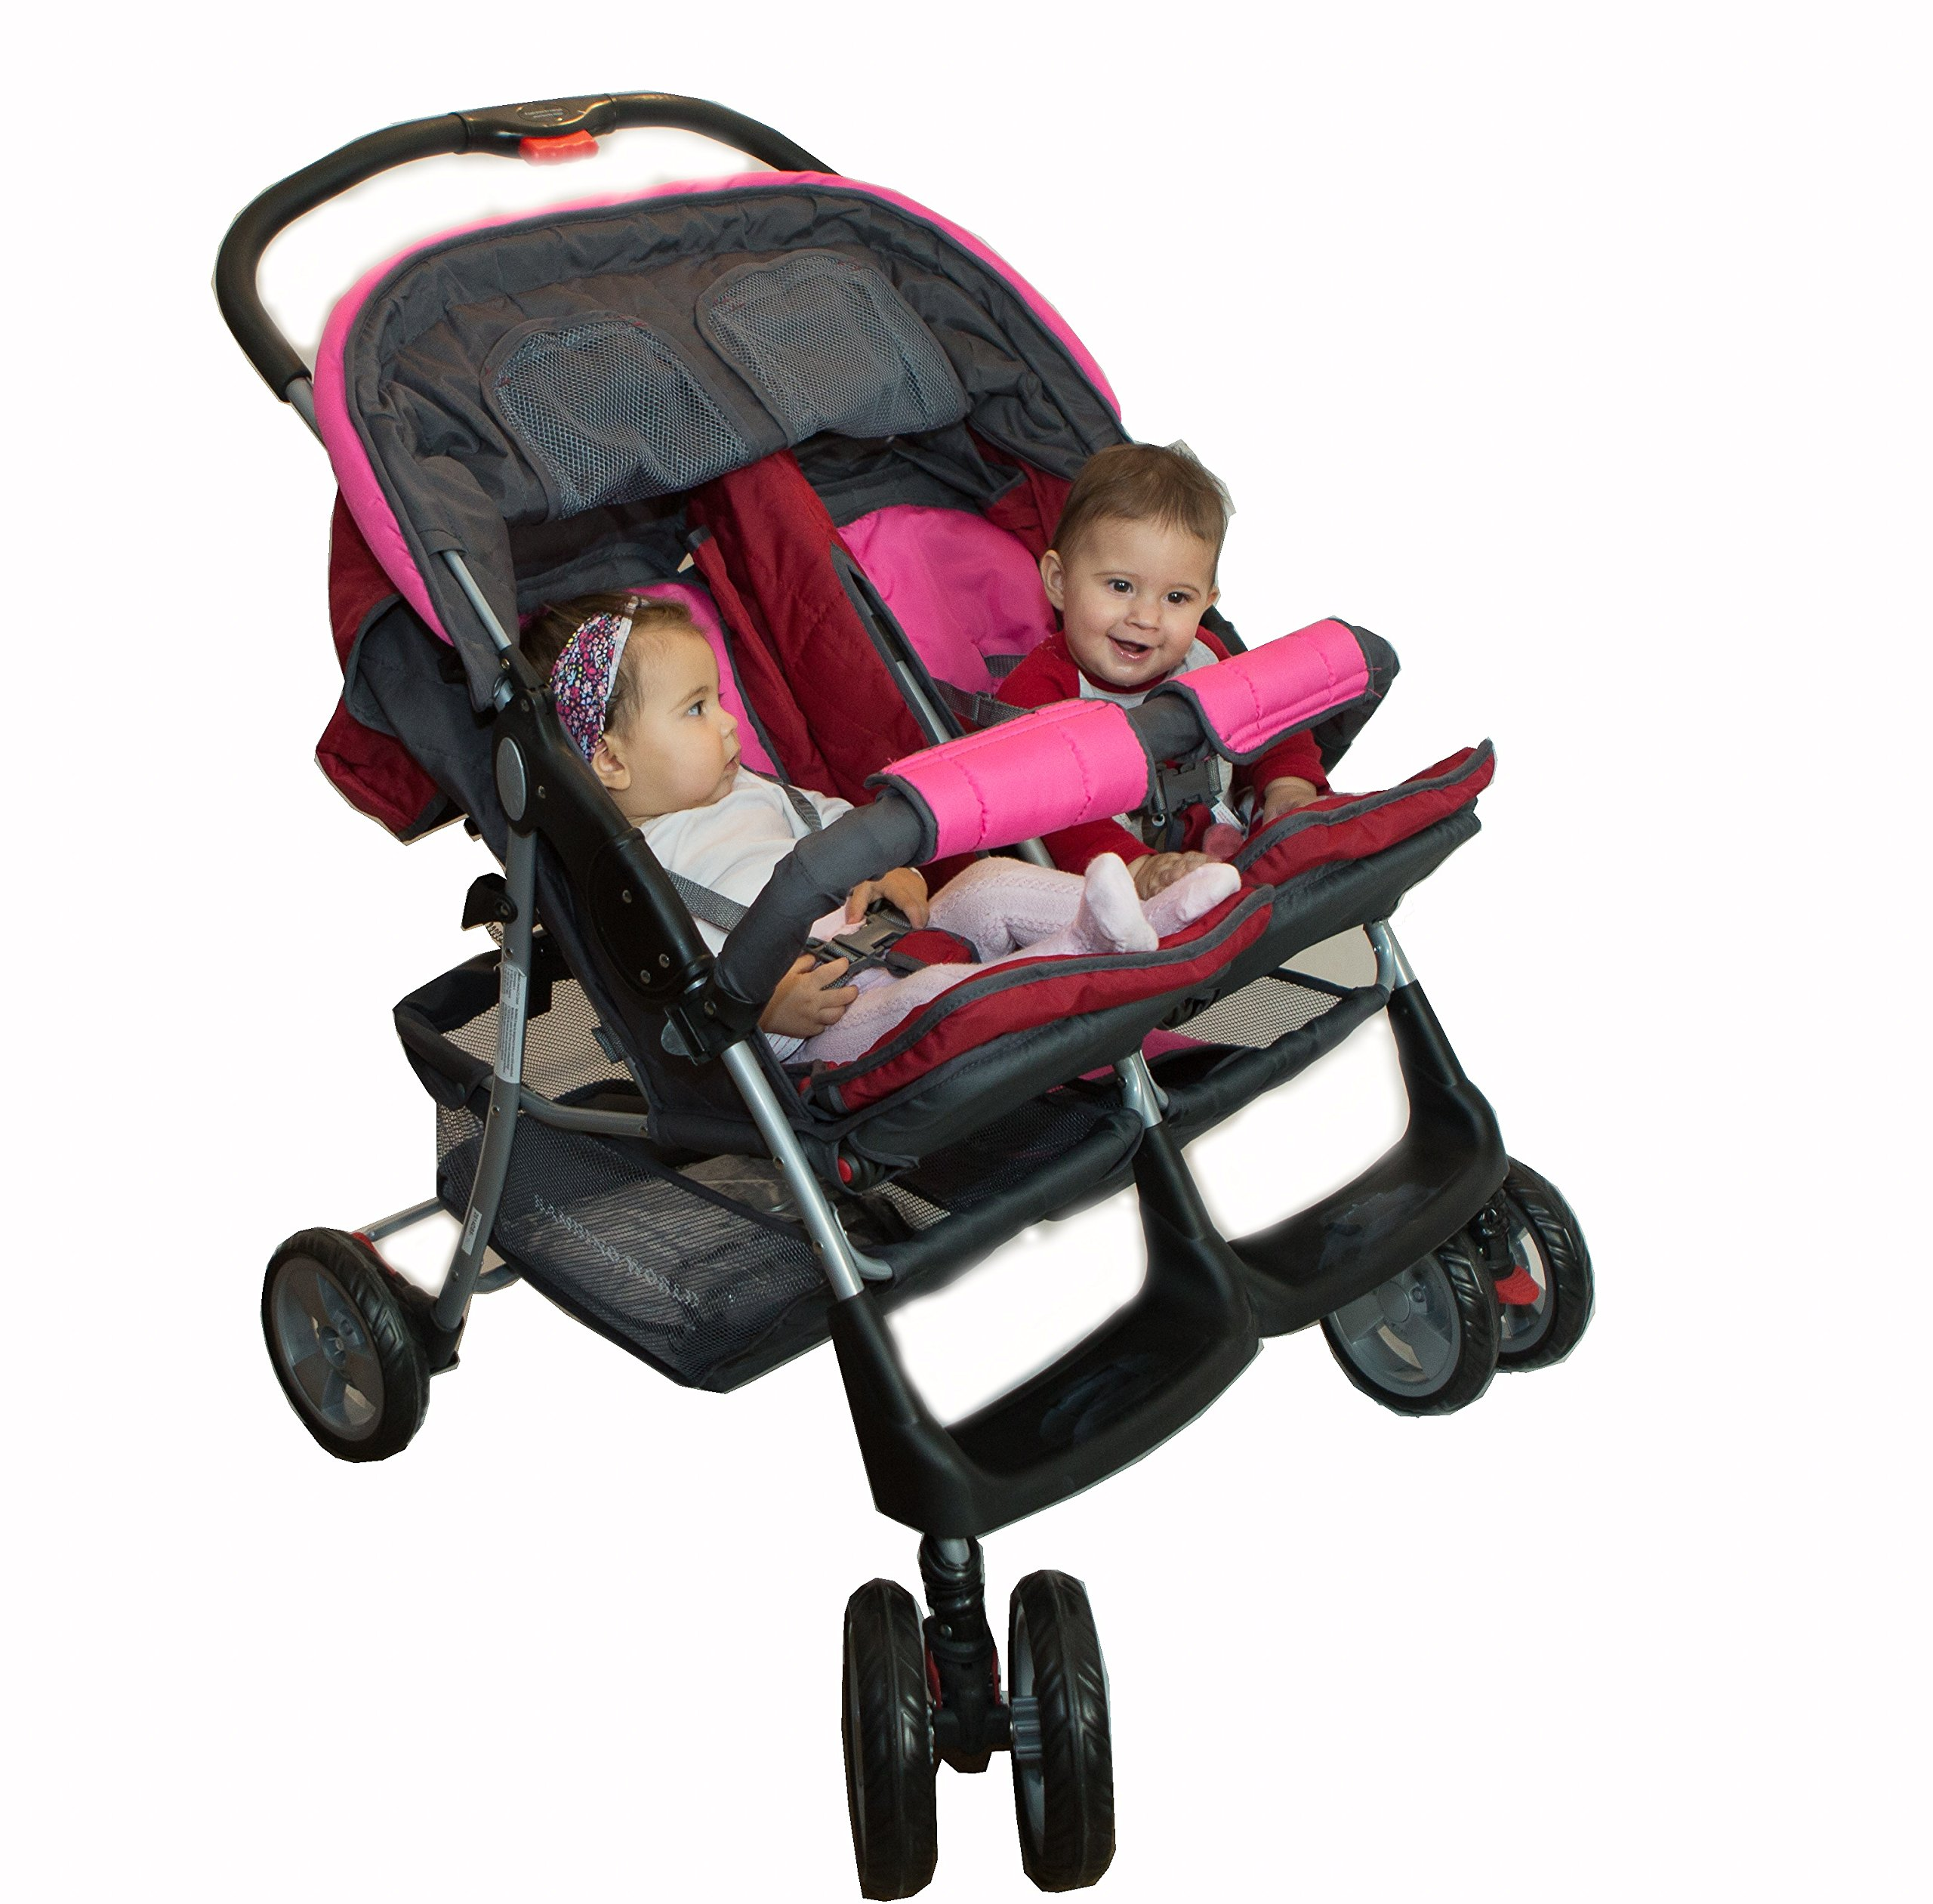 Deluxe Tandem - Twin Pram rose - BambinoWorld Bambino World Ideal pram for parents of twins or children with small difference in age.Thus you remain mobile also with 2 babies or infants. Main features: Very compact and light ; Adjustable backrest ; Foot rests adjustable ; Easy folding . 100% safety for your child : 5-point safety harness ; Brake on rear wheels ; Lockable swivel front wheels ; Complies with strict European norms . 1